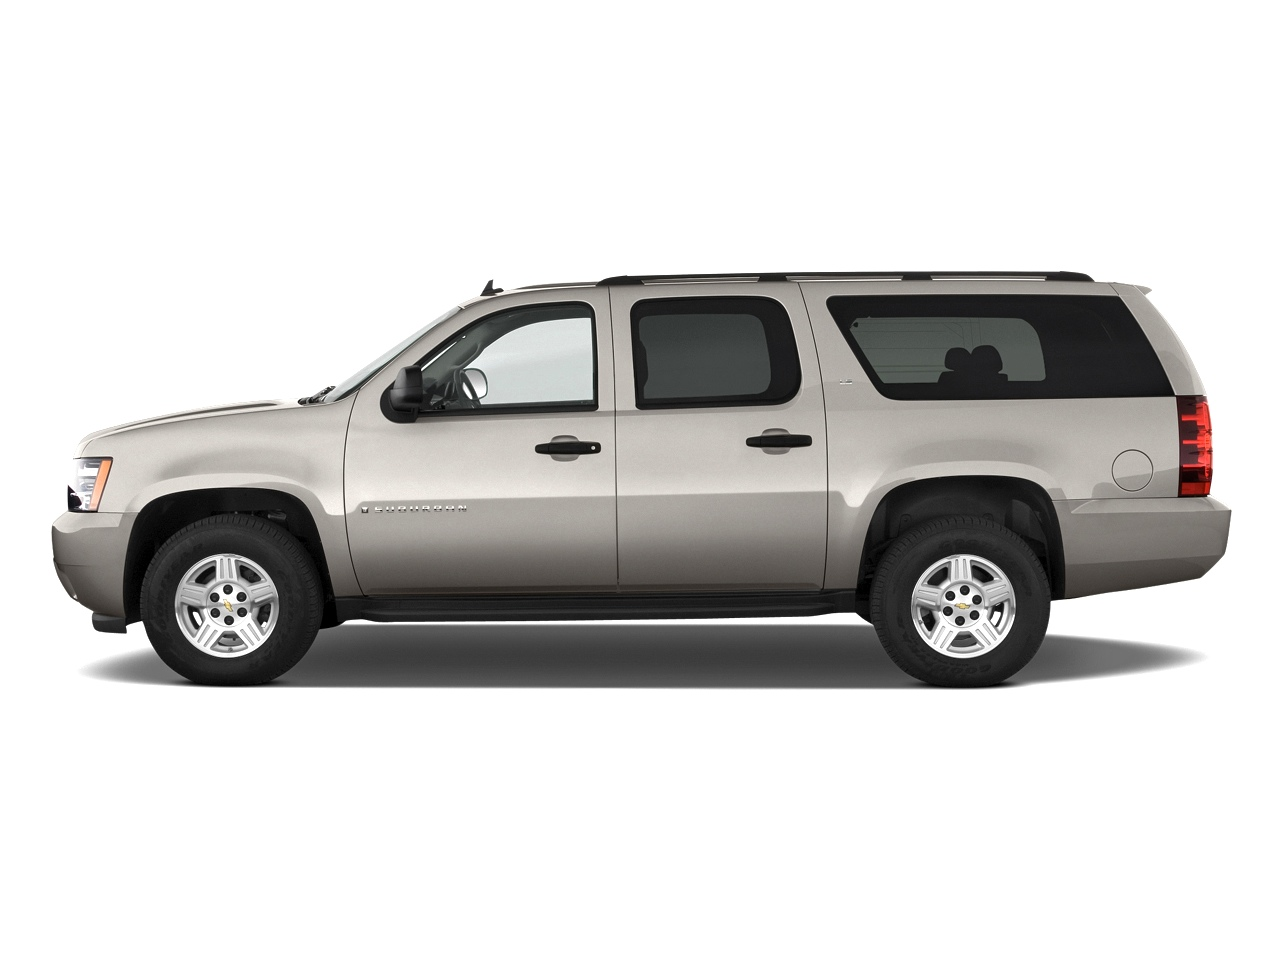 2011 chevrolet suburban chevy review ratings specs. Black Bedroom Furniture Sets. Home Design Ideas